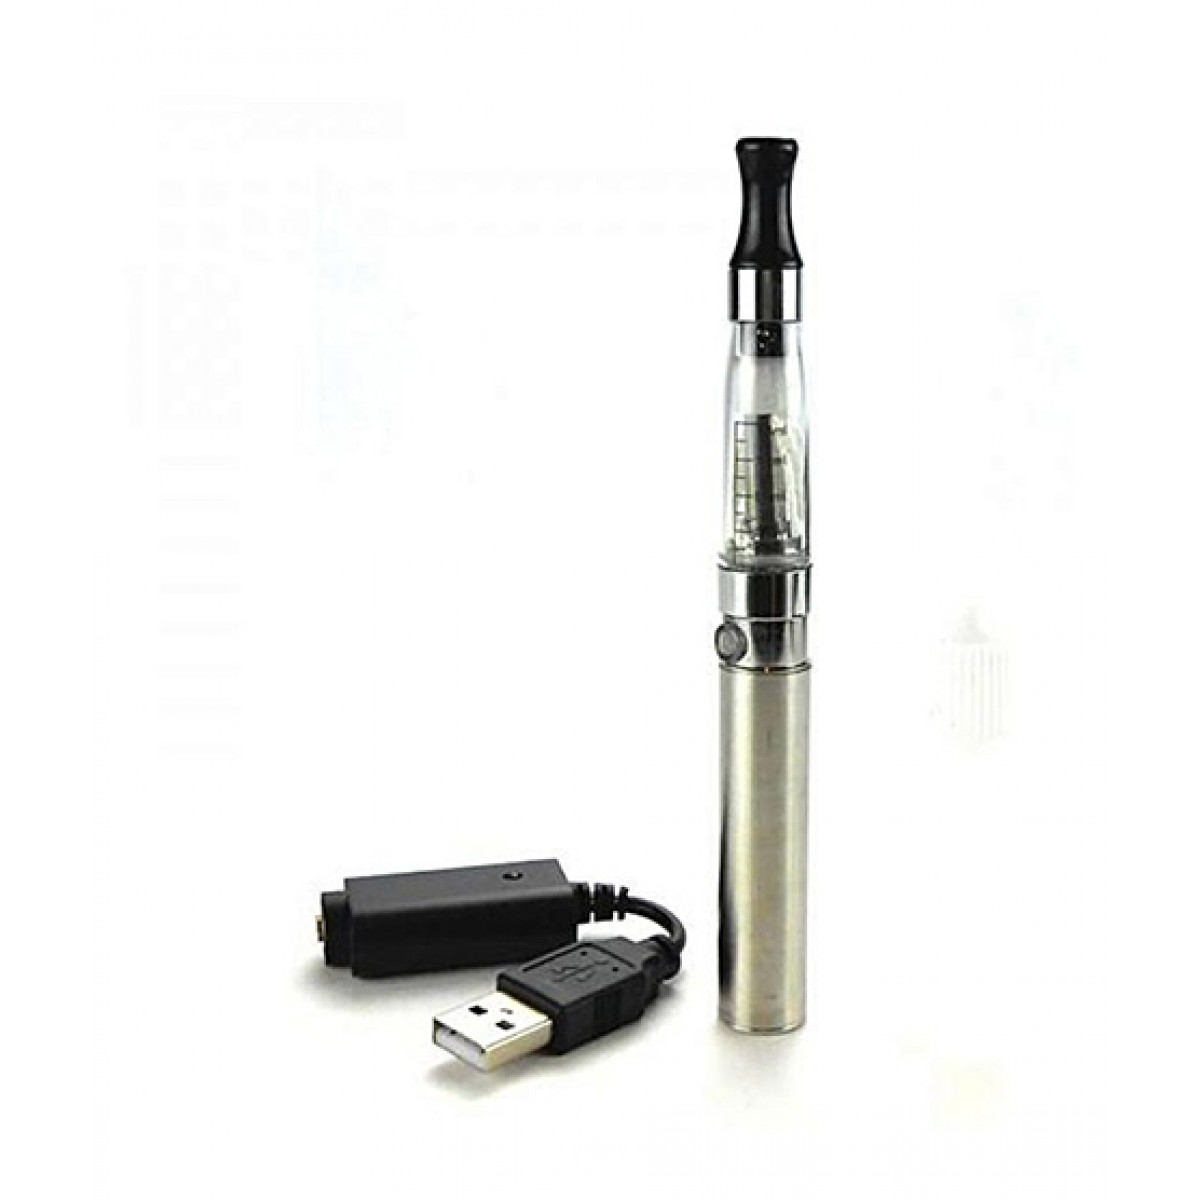 Brand Mall Electronic Pen Shisha With Liquid - Silver